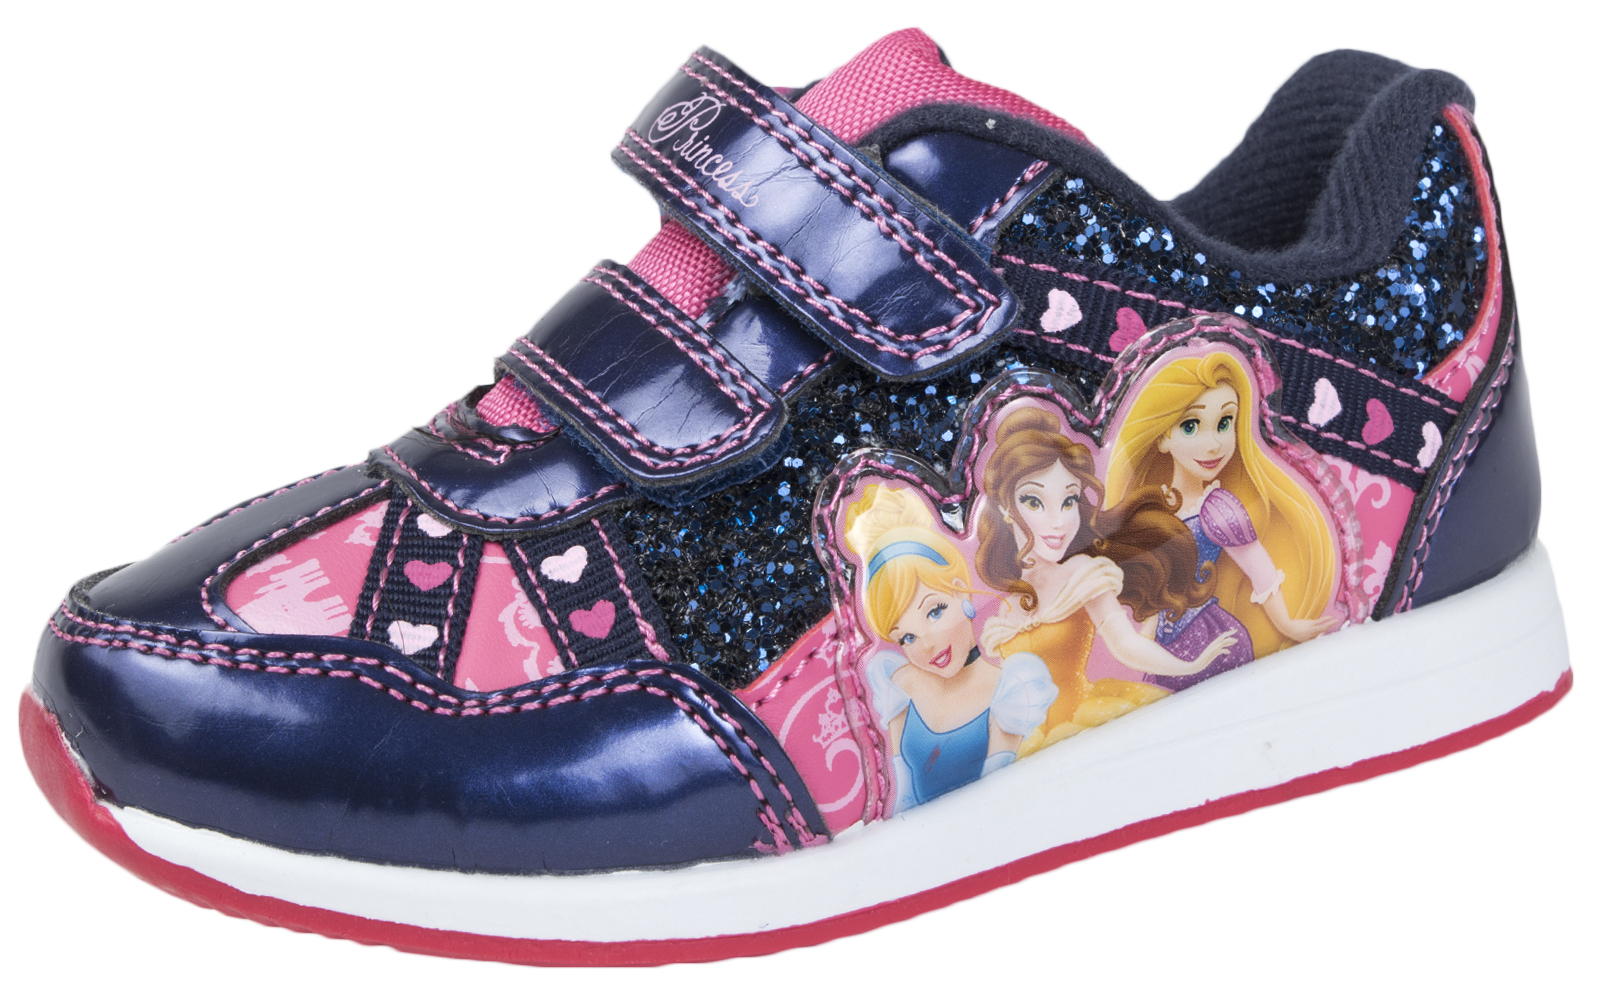 Disney Princess Glitter Trainers Easy Touch Skate Pumps Cinderella Belle Shoes